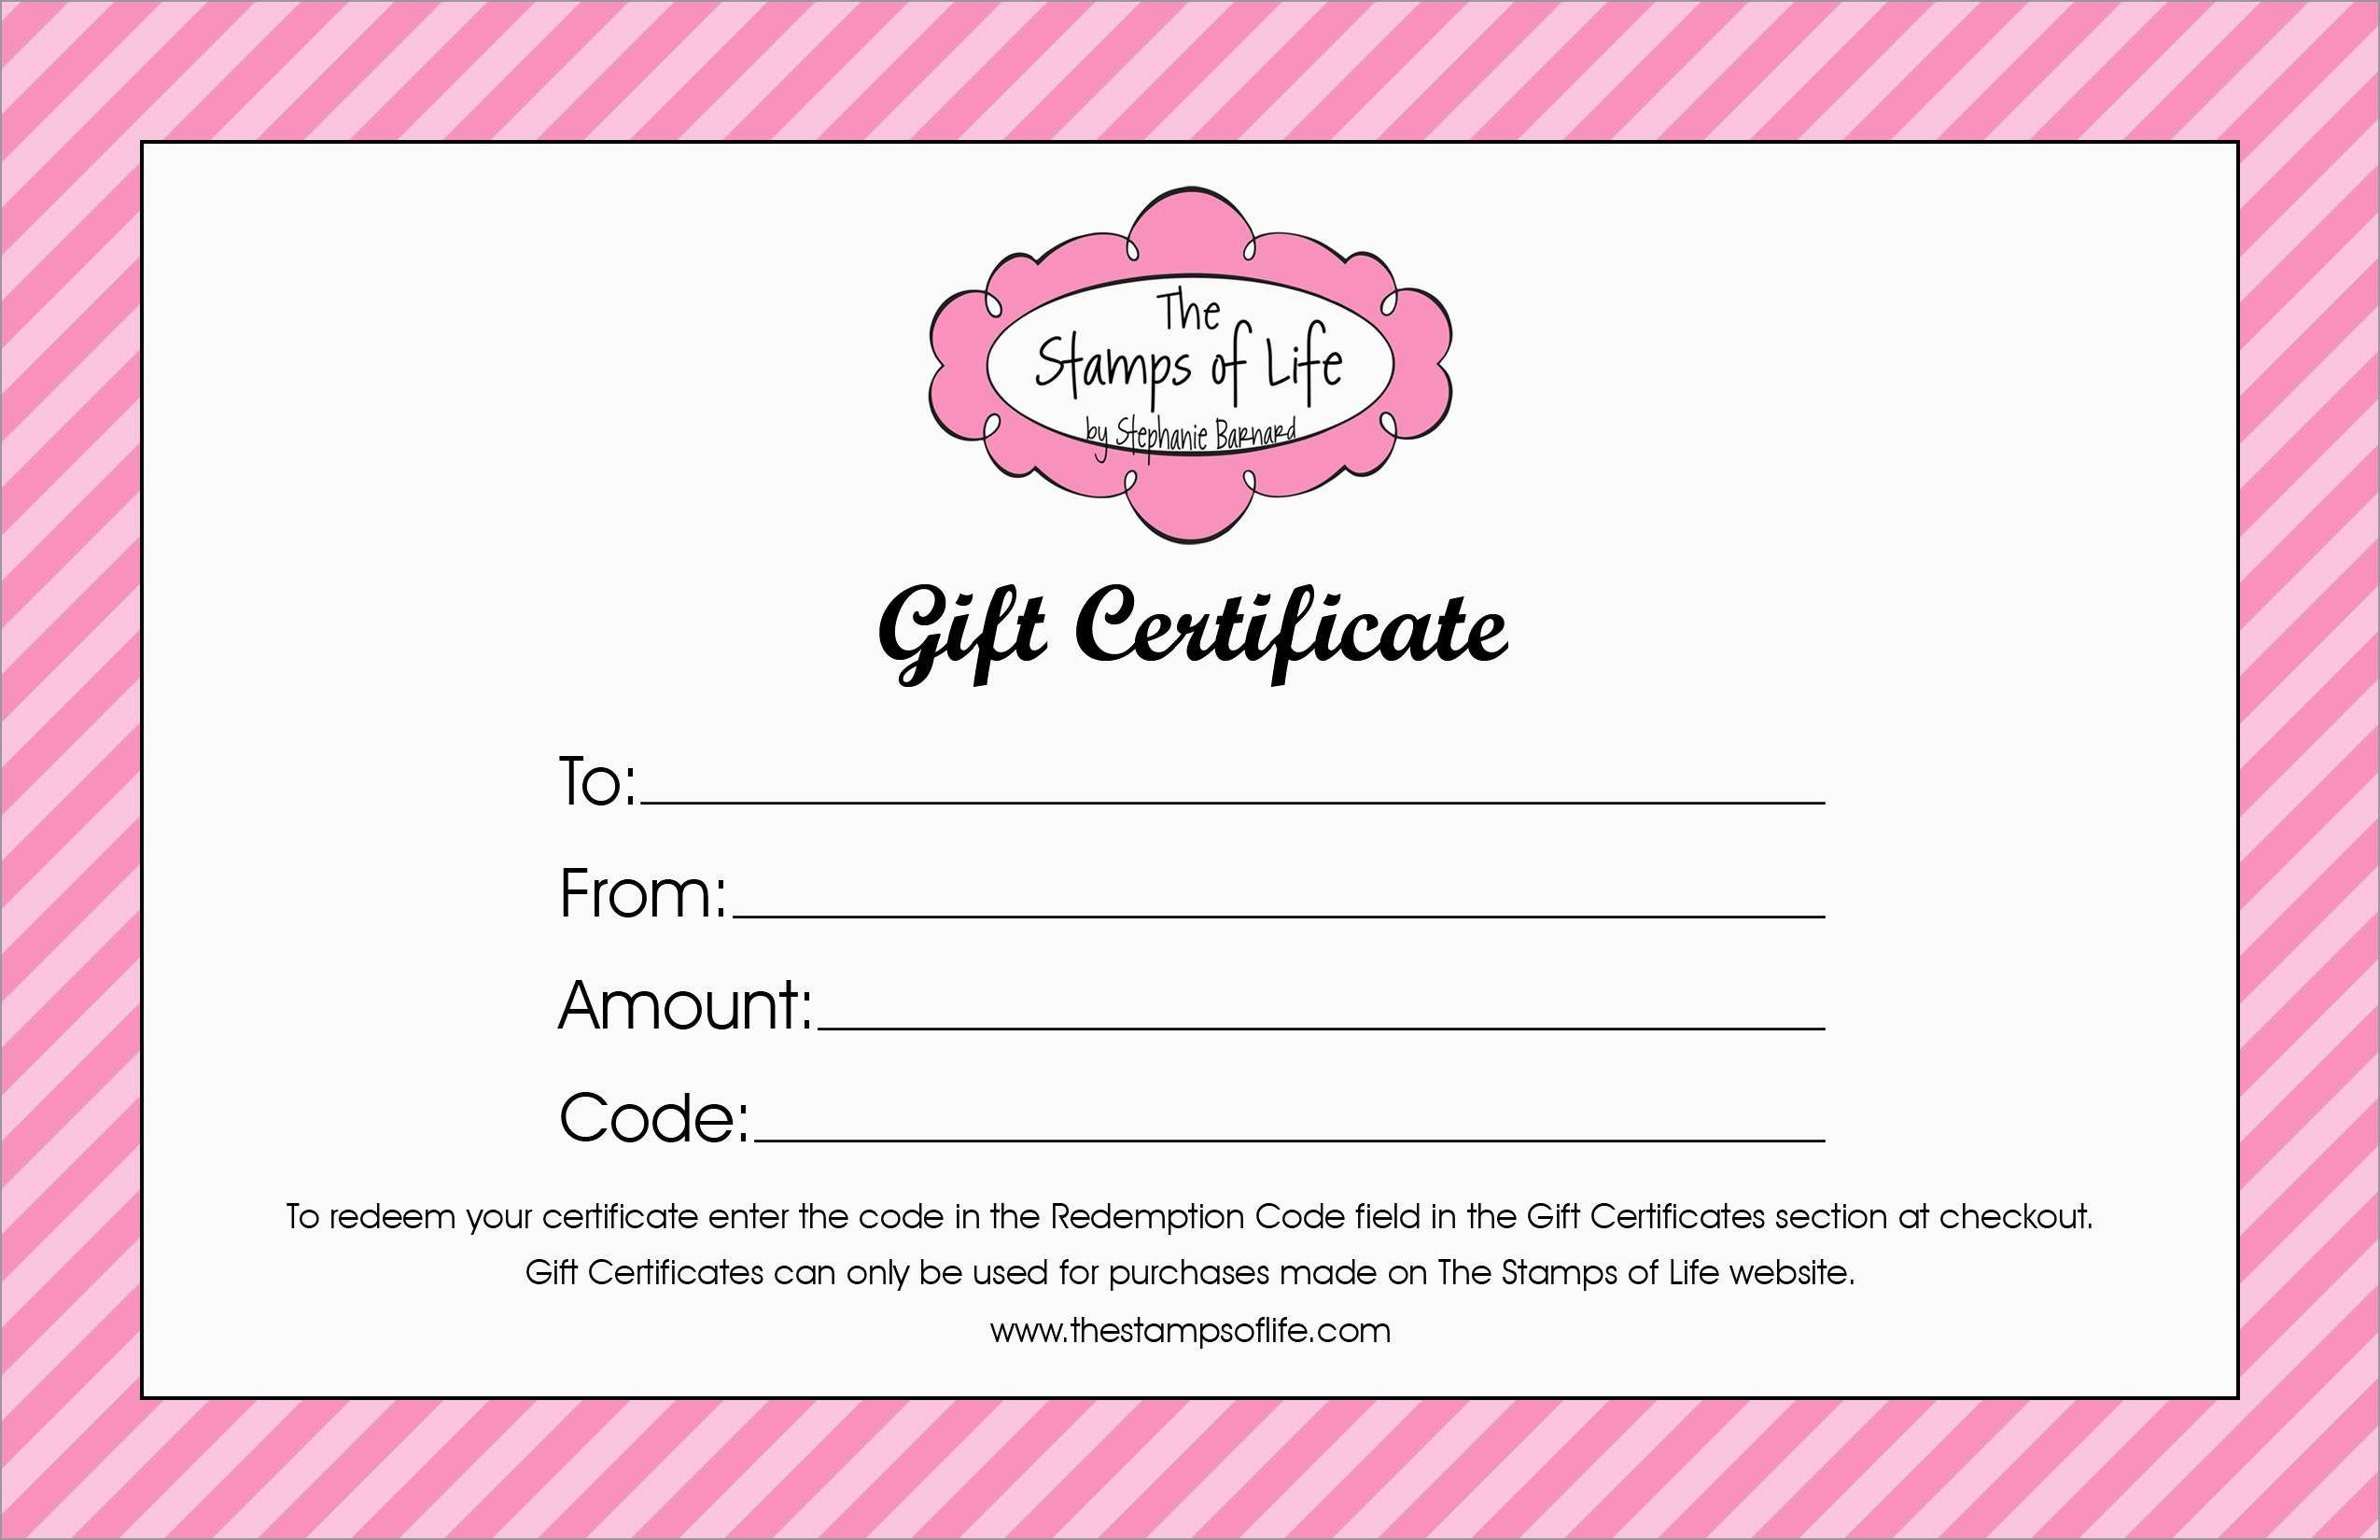 New Gift Certificate Template Free Download  Best Of Template With Homemade Christmas Gift Certificates Templates